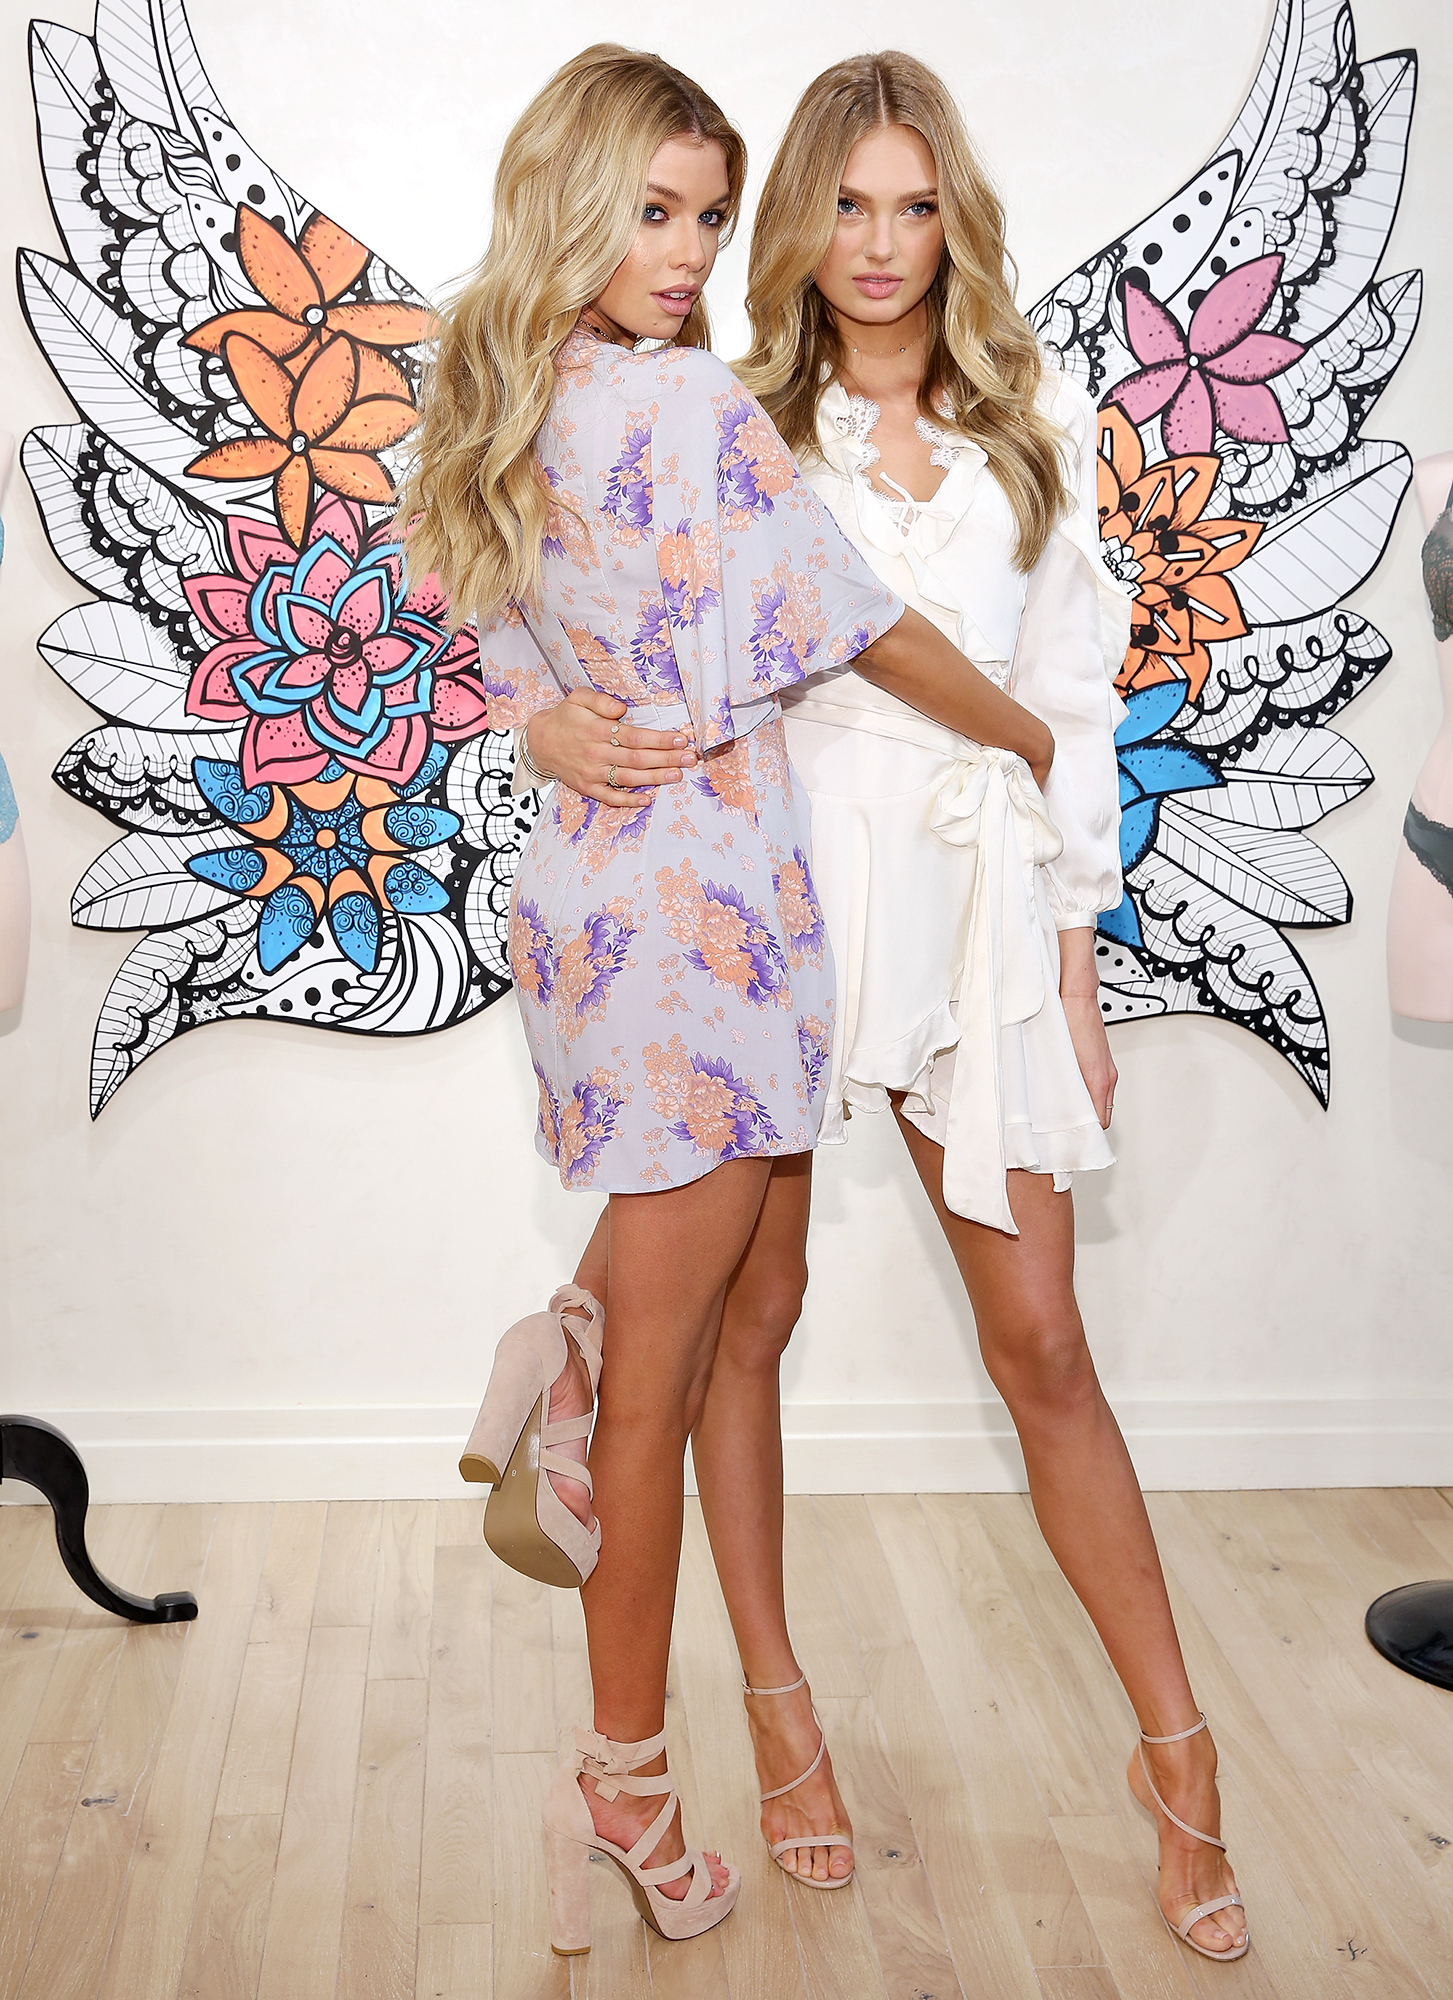 Victoria's Secret Angels Stella Maxwell And Romee Strijd Launch The New Dream Angels Collection